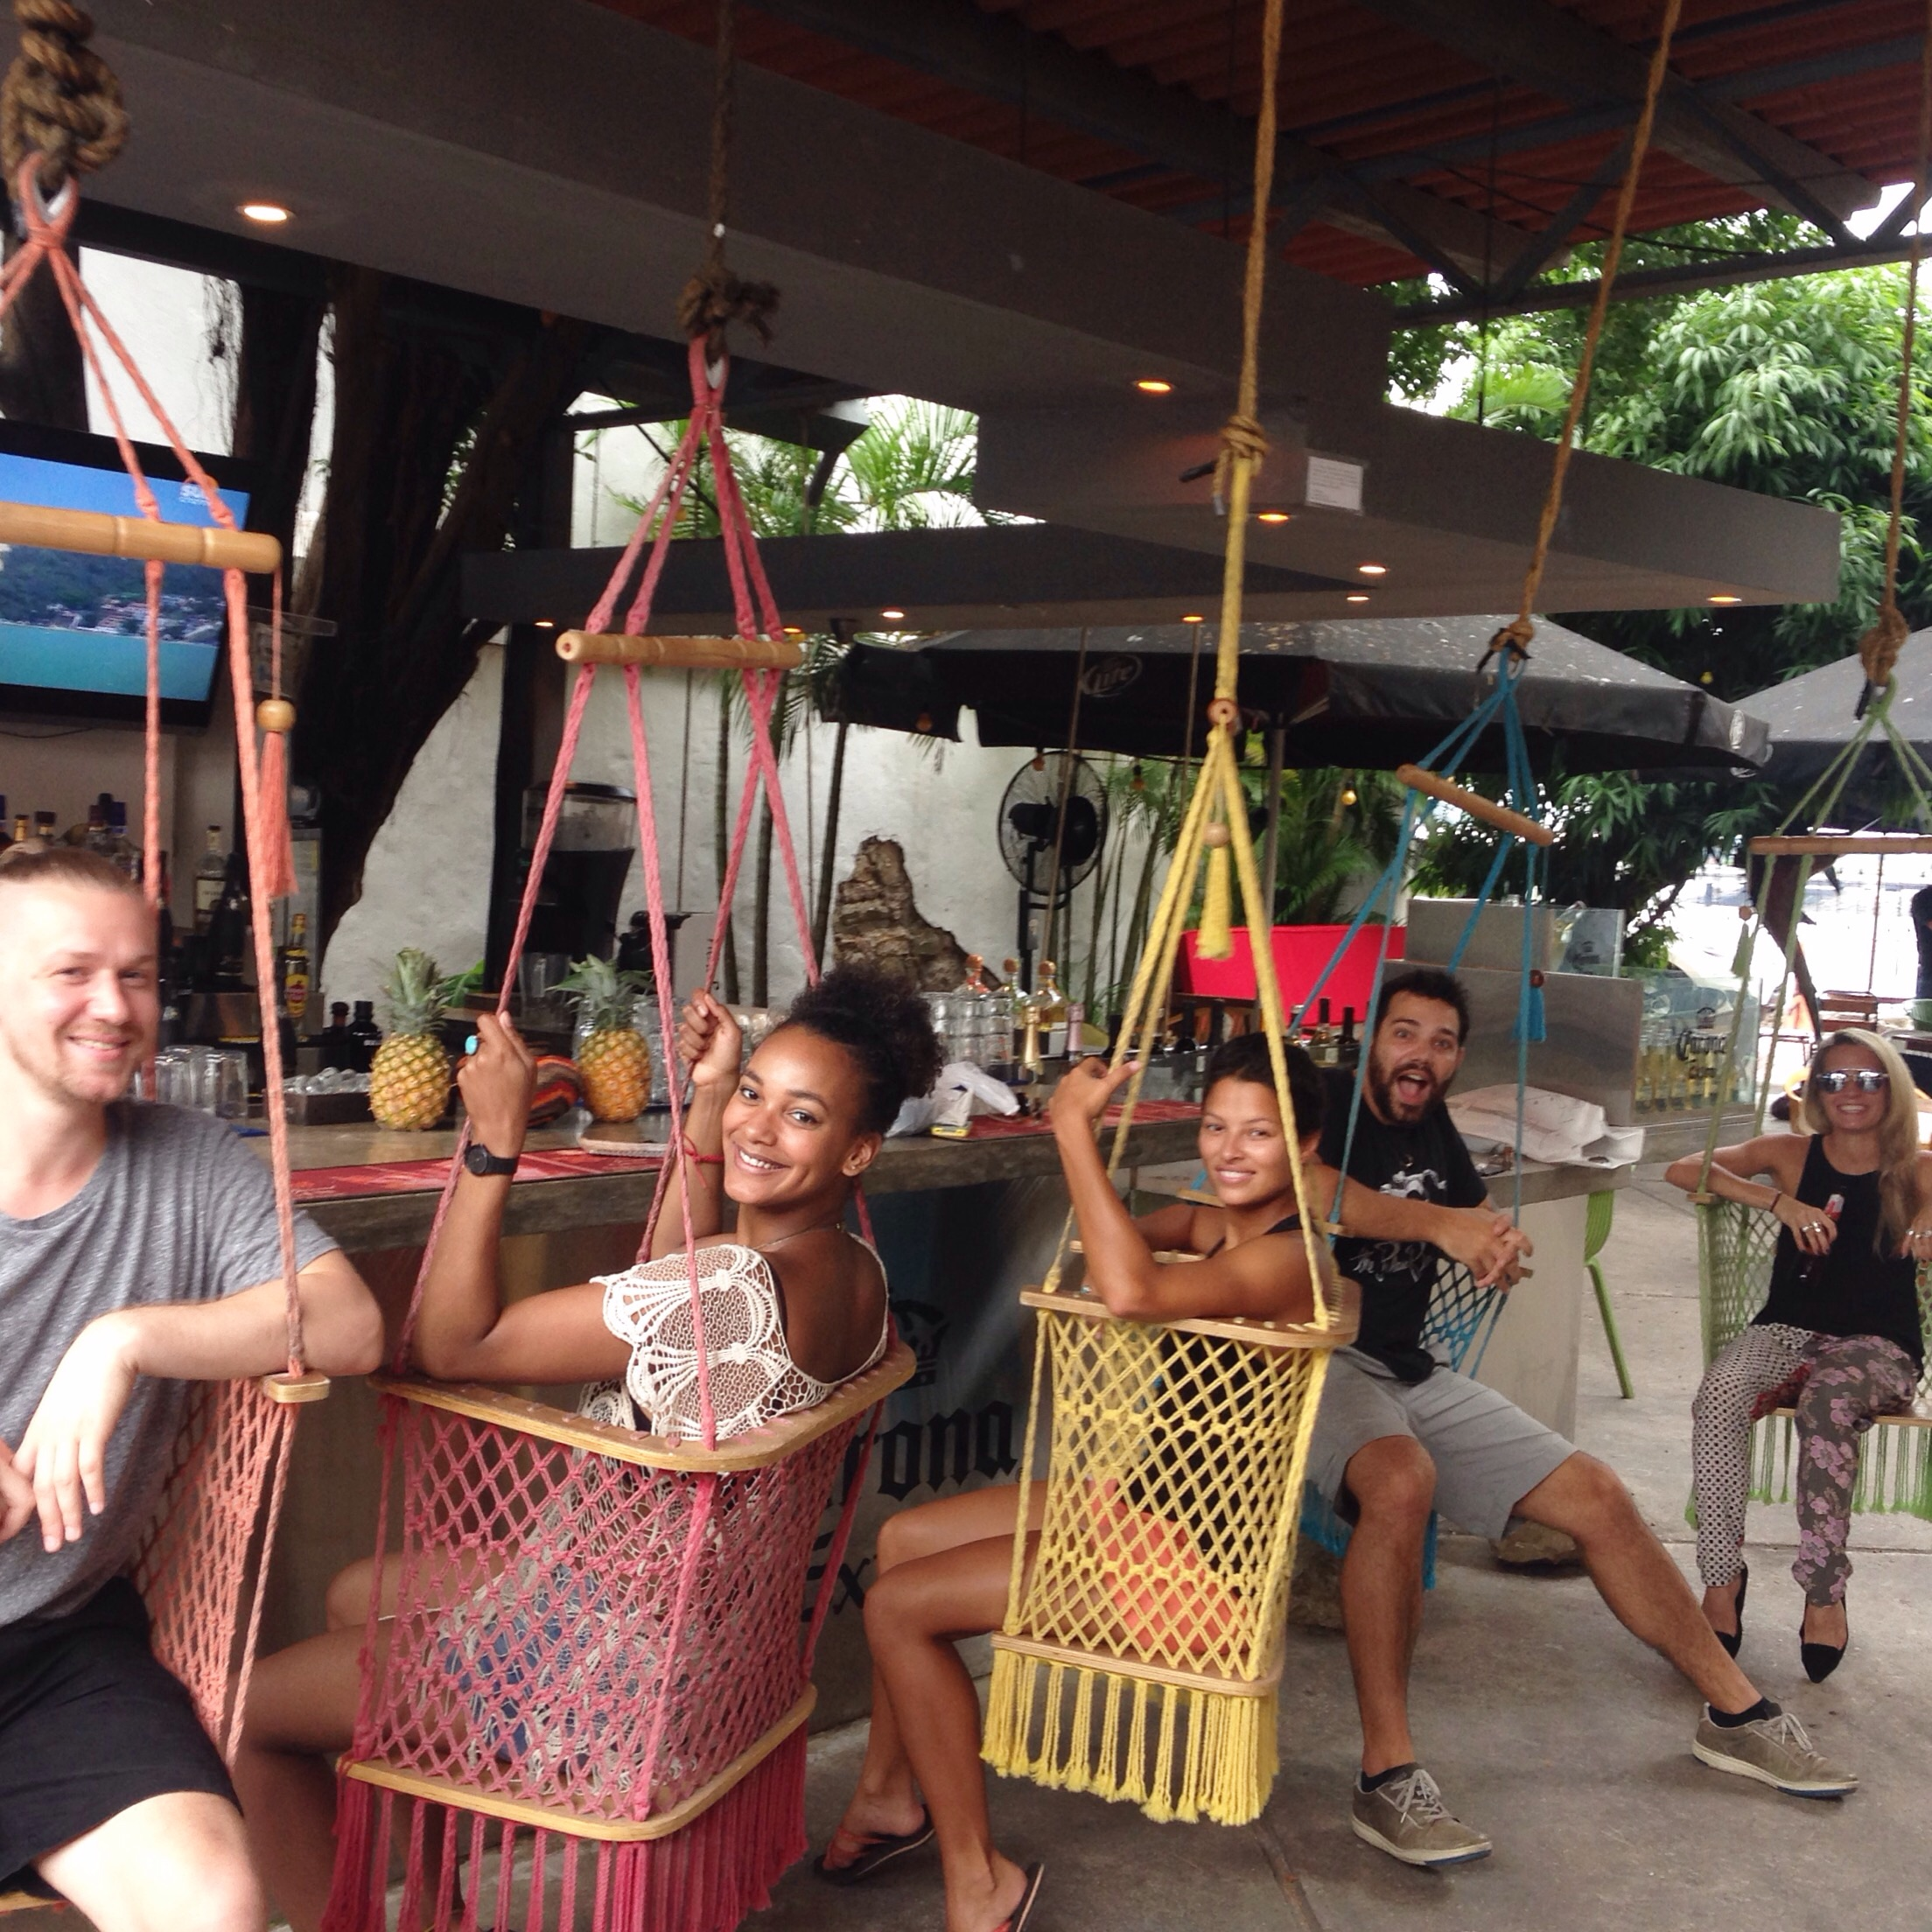 We met up with everyone at the Finca del Mar swing bar.